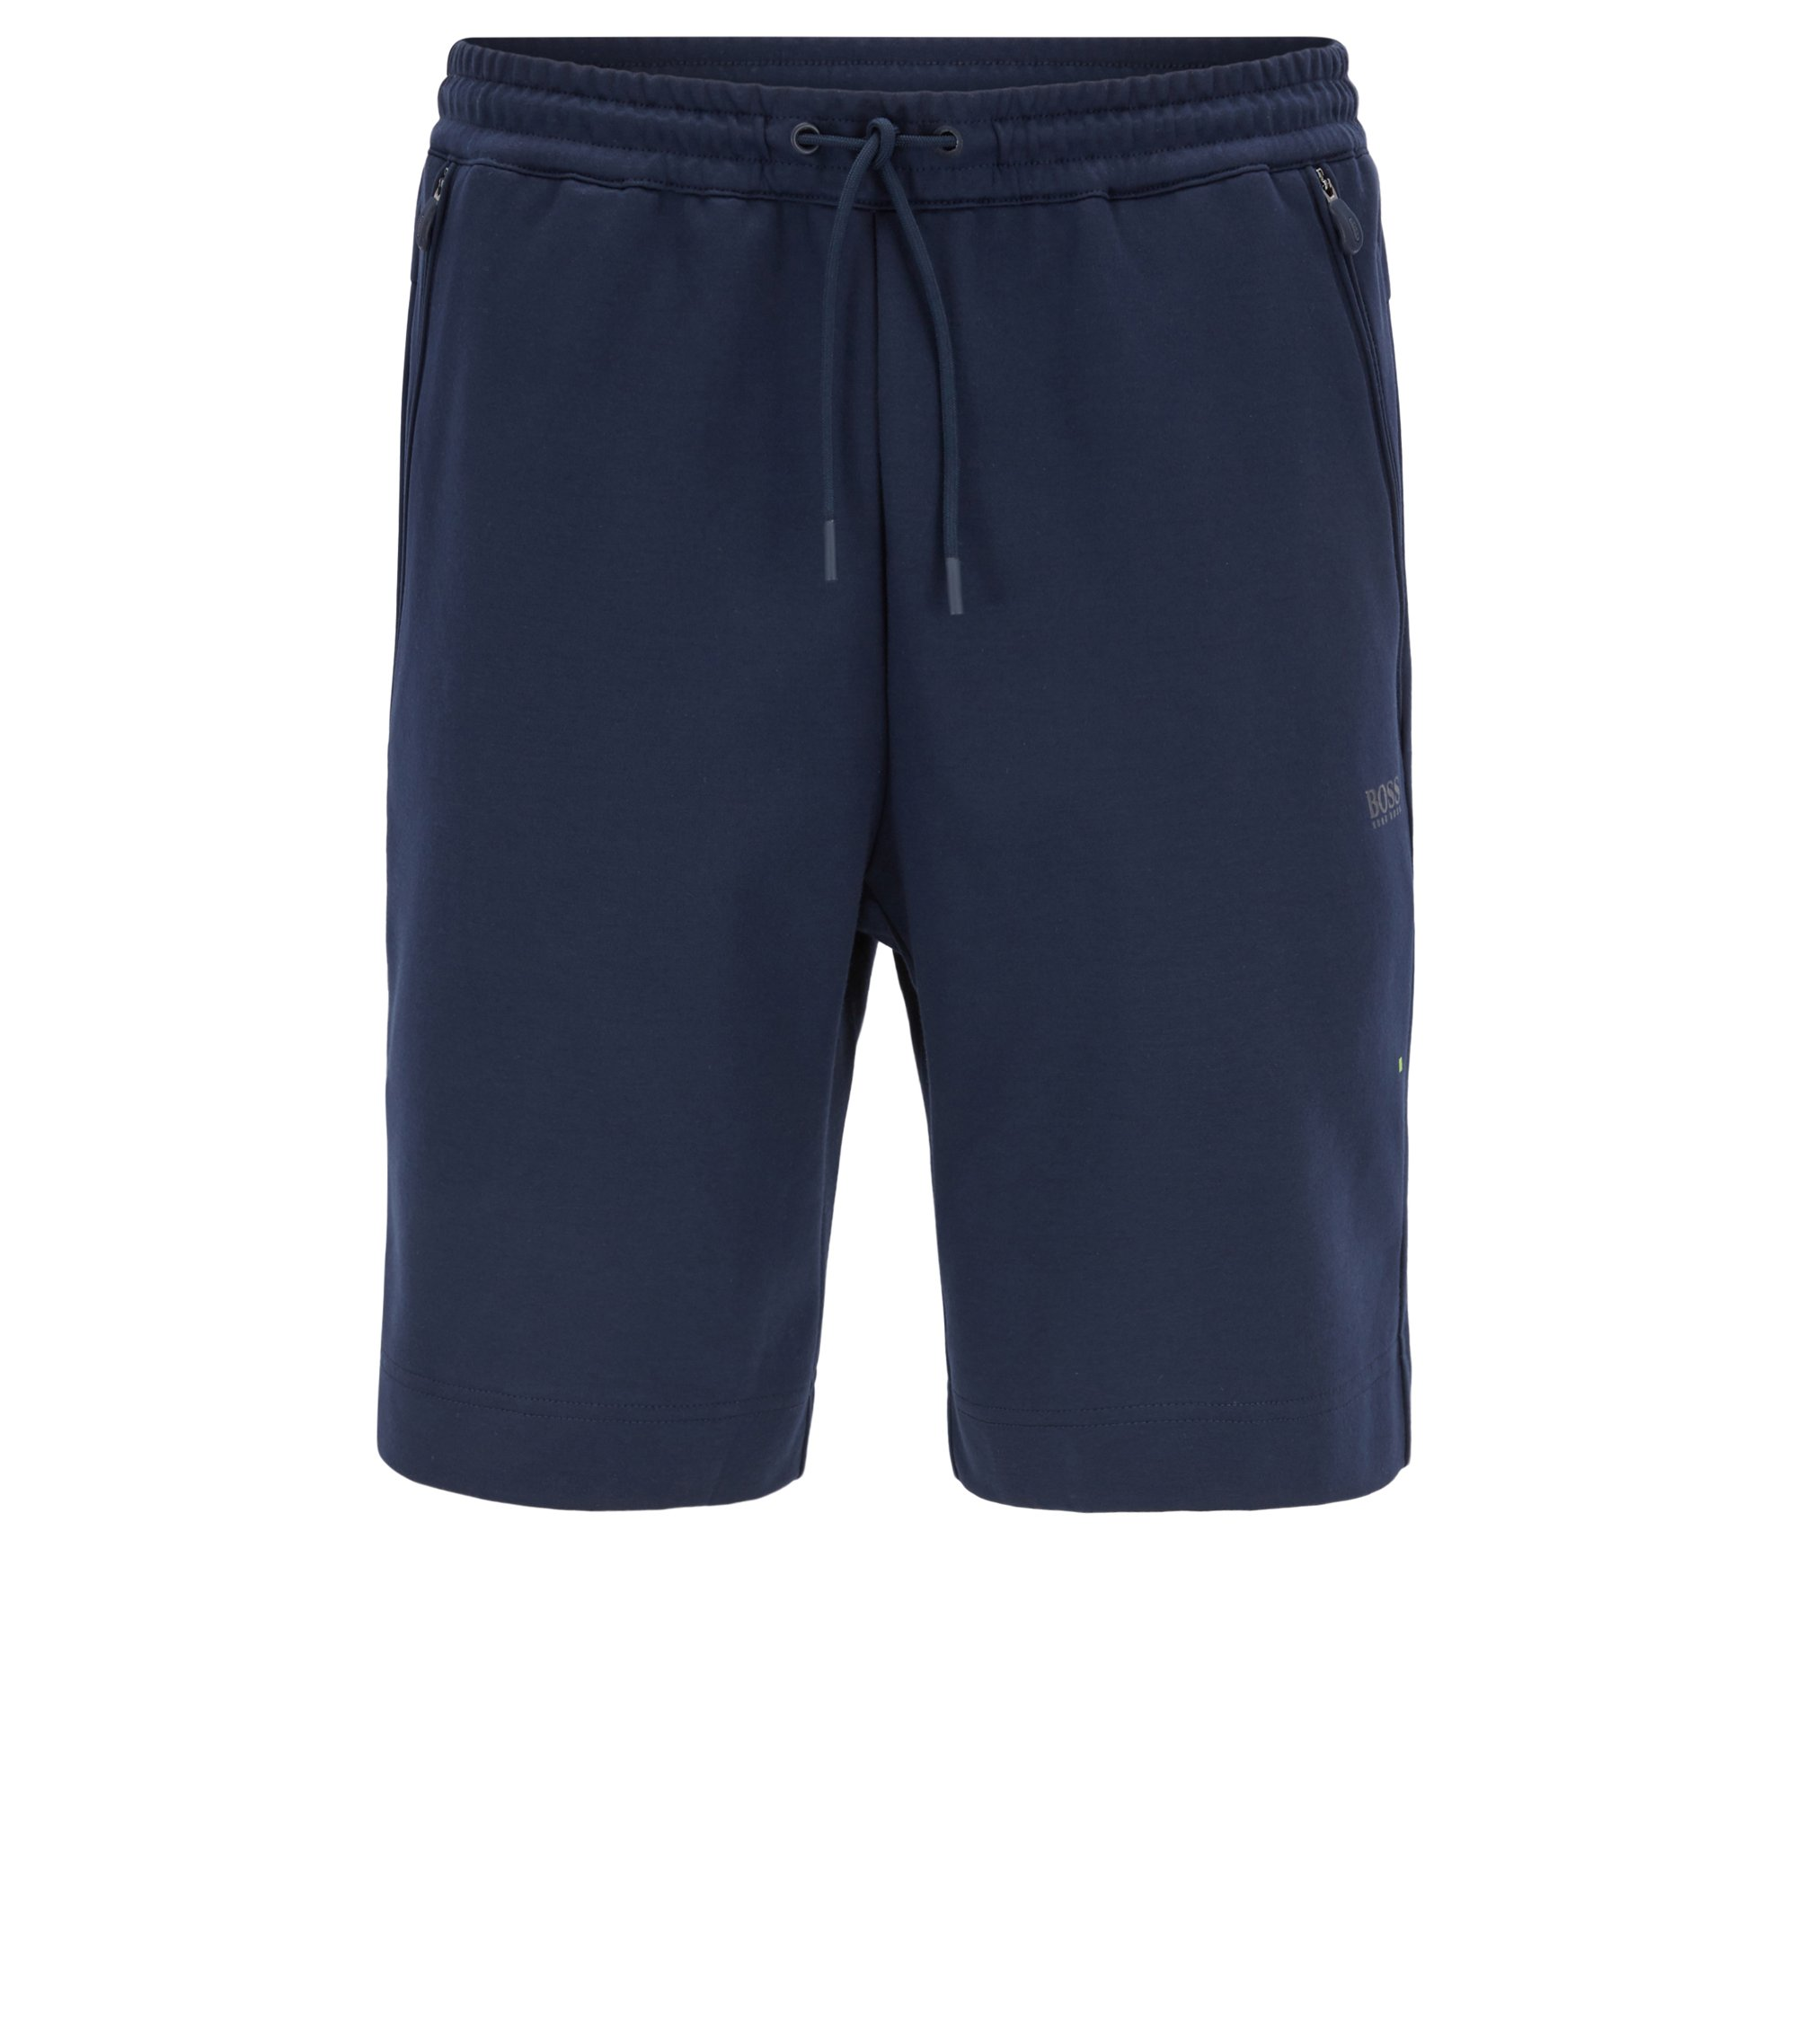 Jersey Blend Sweatshort, Slim Fit | HSL Tech, Dark Blue